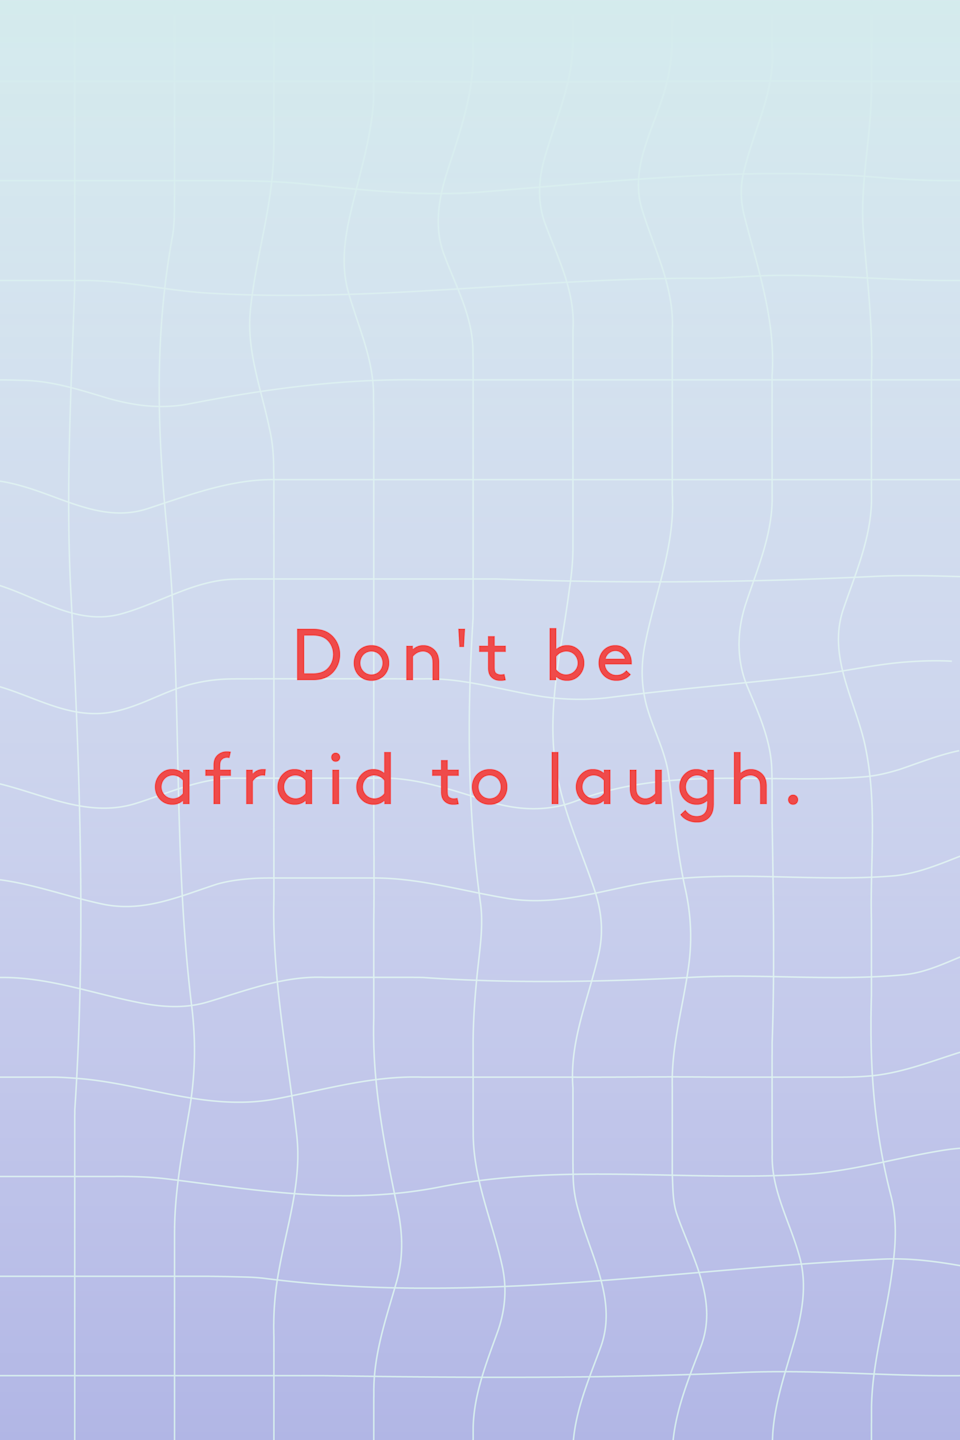 """<p><strong>Don't be afraid to laugh.</strong></p><p>""""It's normal to lose your train of thought or get distracted while you're on the phone. If that happens, don't panic! If you can't laugh at yourself during sex, you're already setting yourself up for a challenging time. When that happens, bring your attention back to your body and narrate what's happening in the moment. <em>I feel my heart pounding. My skin is flushed. I can feel throbbing between my legs.</em> """" –<a href=""""http://www.ashleymanta.com/feminist_guide_to_phone_sex_live"""" rel=""""nofollow noopener"""" target=""""_blank"""" data-ylk=""""slk:Ashley M."""" class=""""link rapid-noclick-resp"""">Ashley M.</a></p>"""